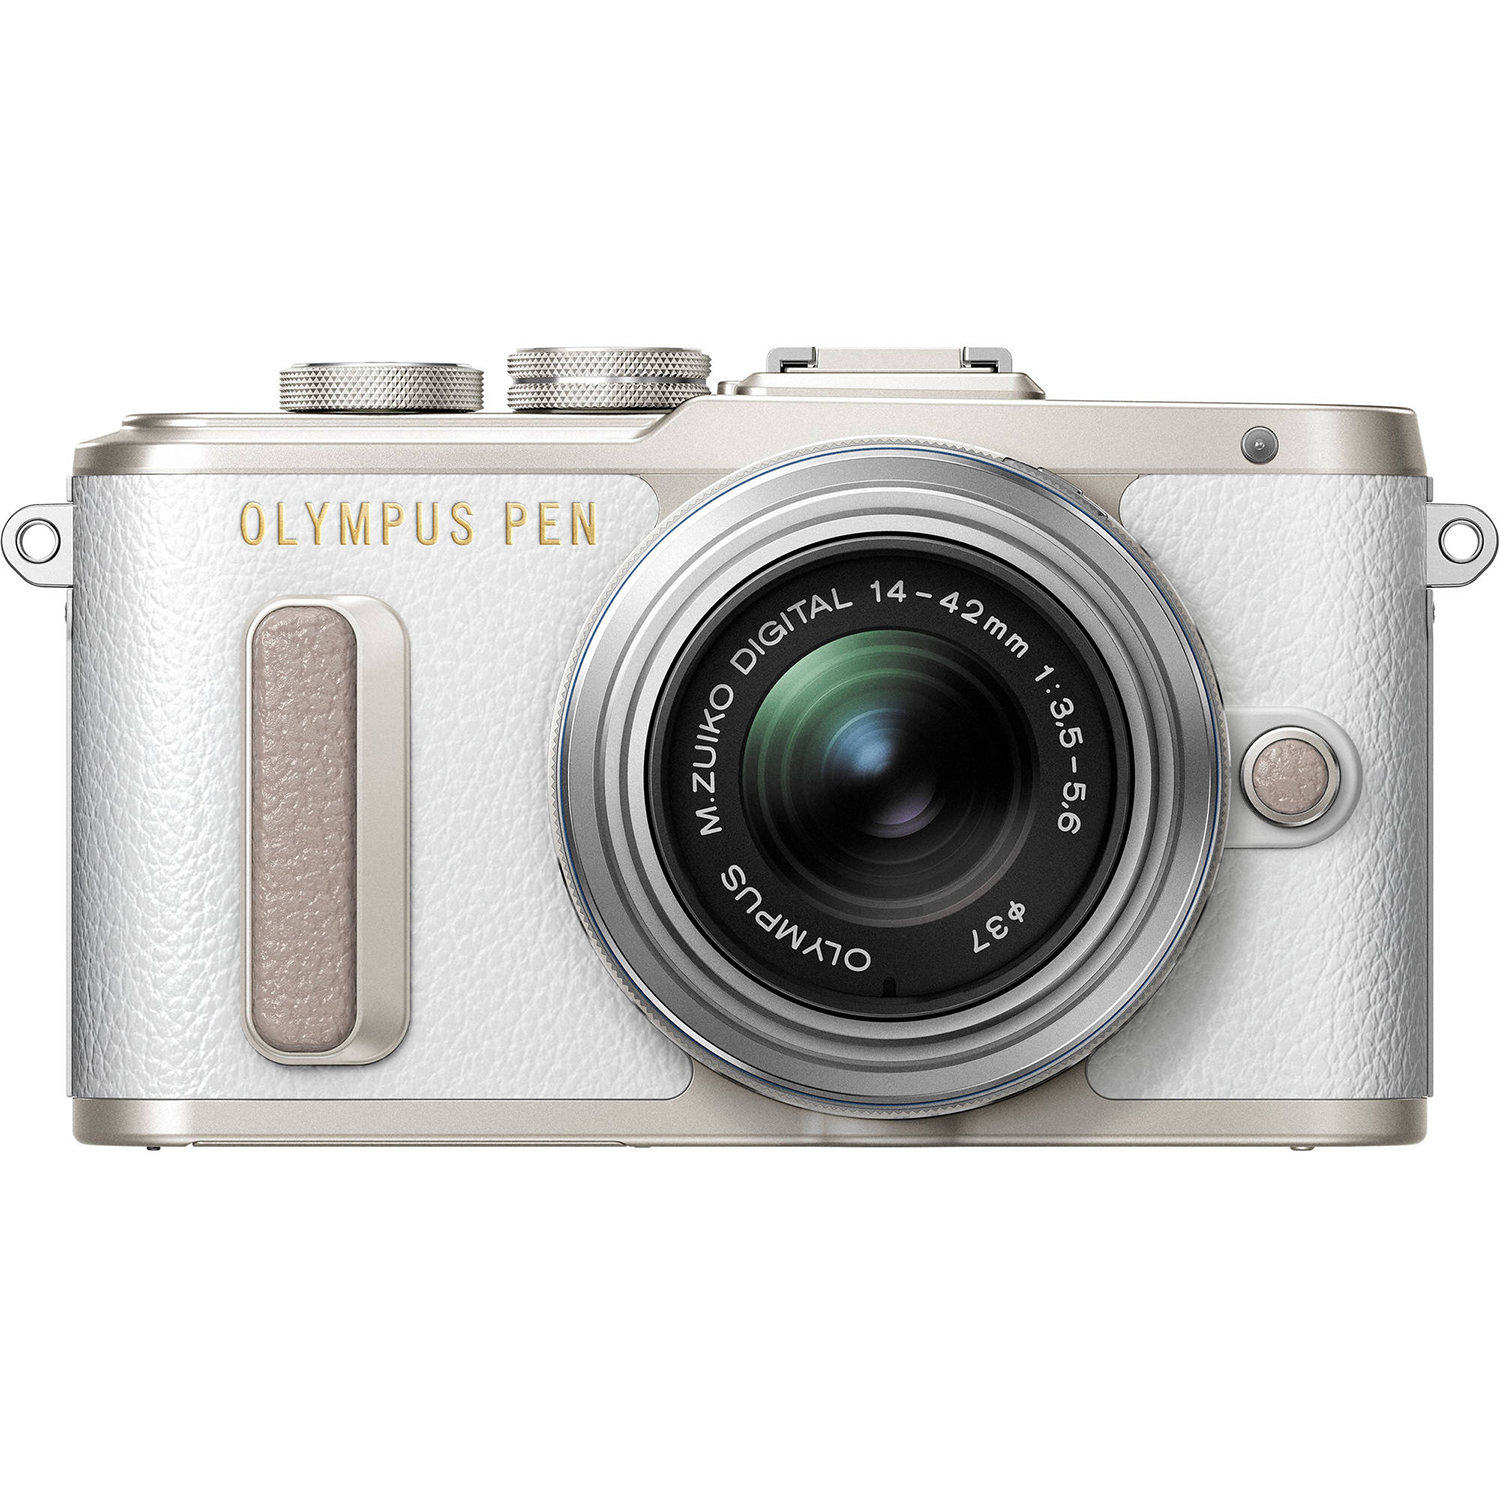 Olympus PEN E-PL8 16.1 Megapixel Camera with Lens, White by Olympus